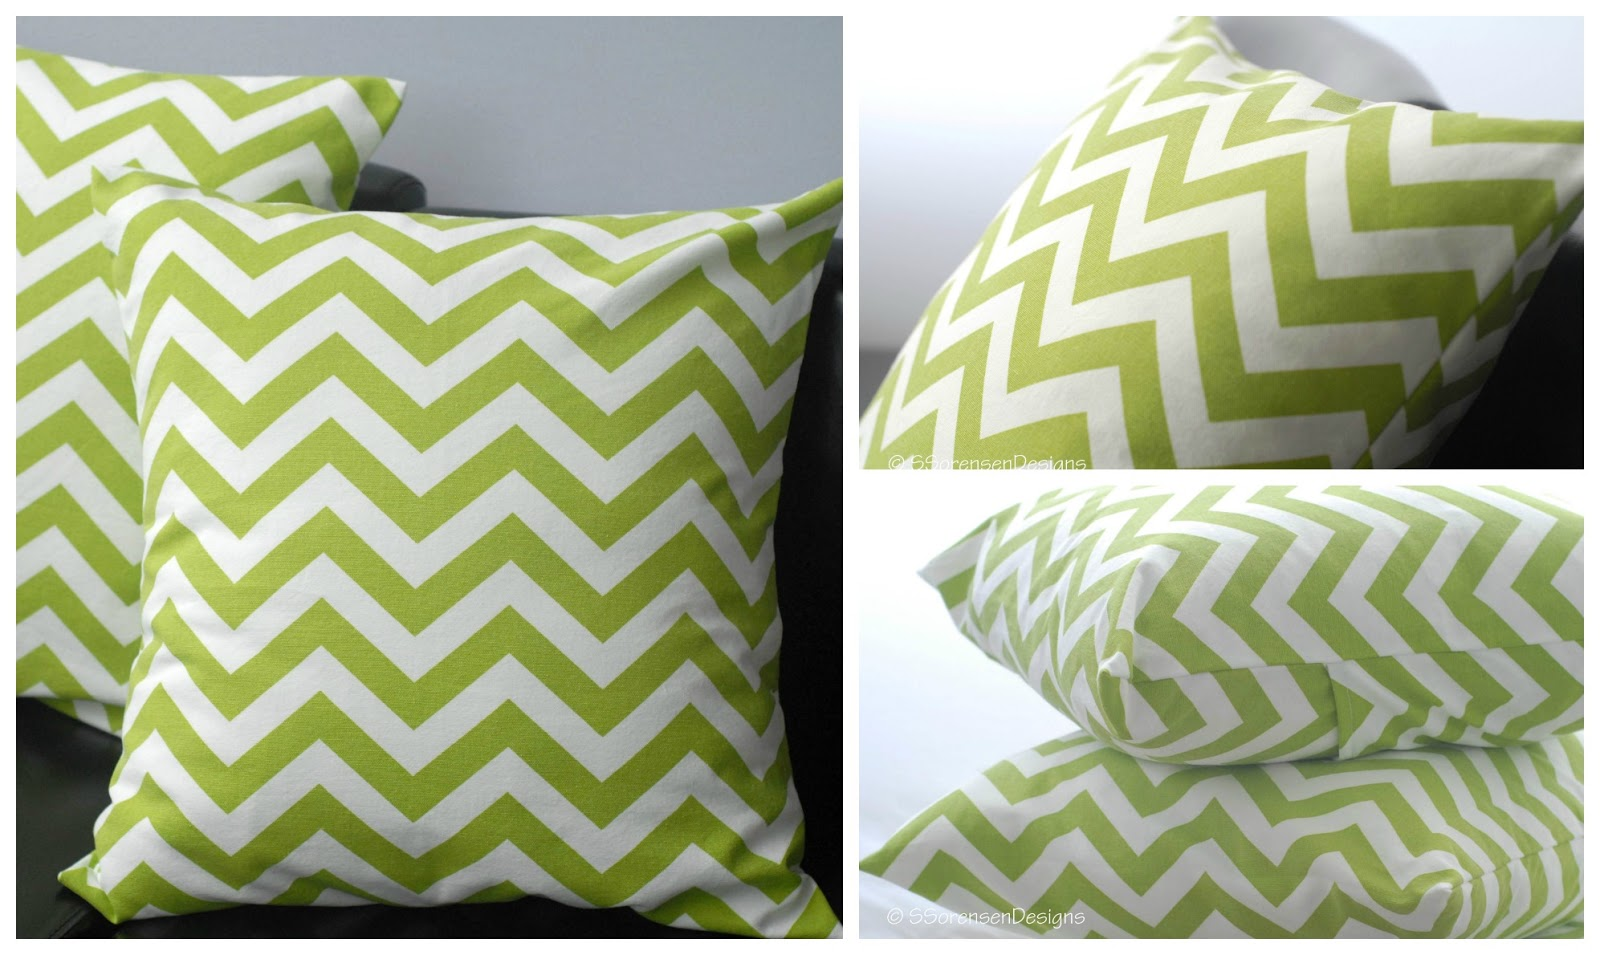 Sewing tutorials crafts diy handmade shannon sews - Fabric for throw pillows ...